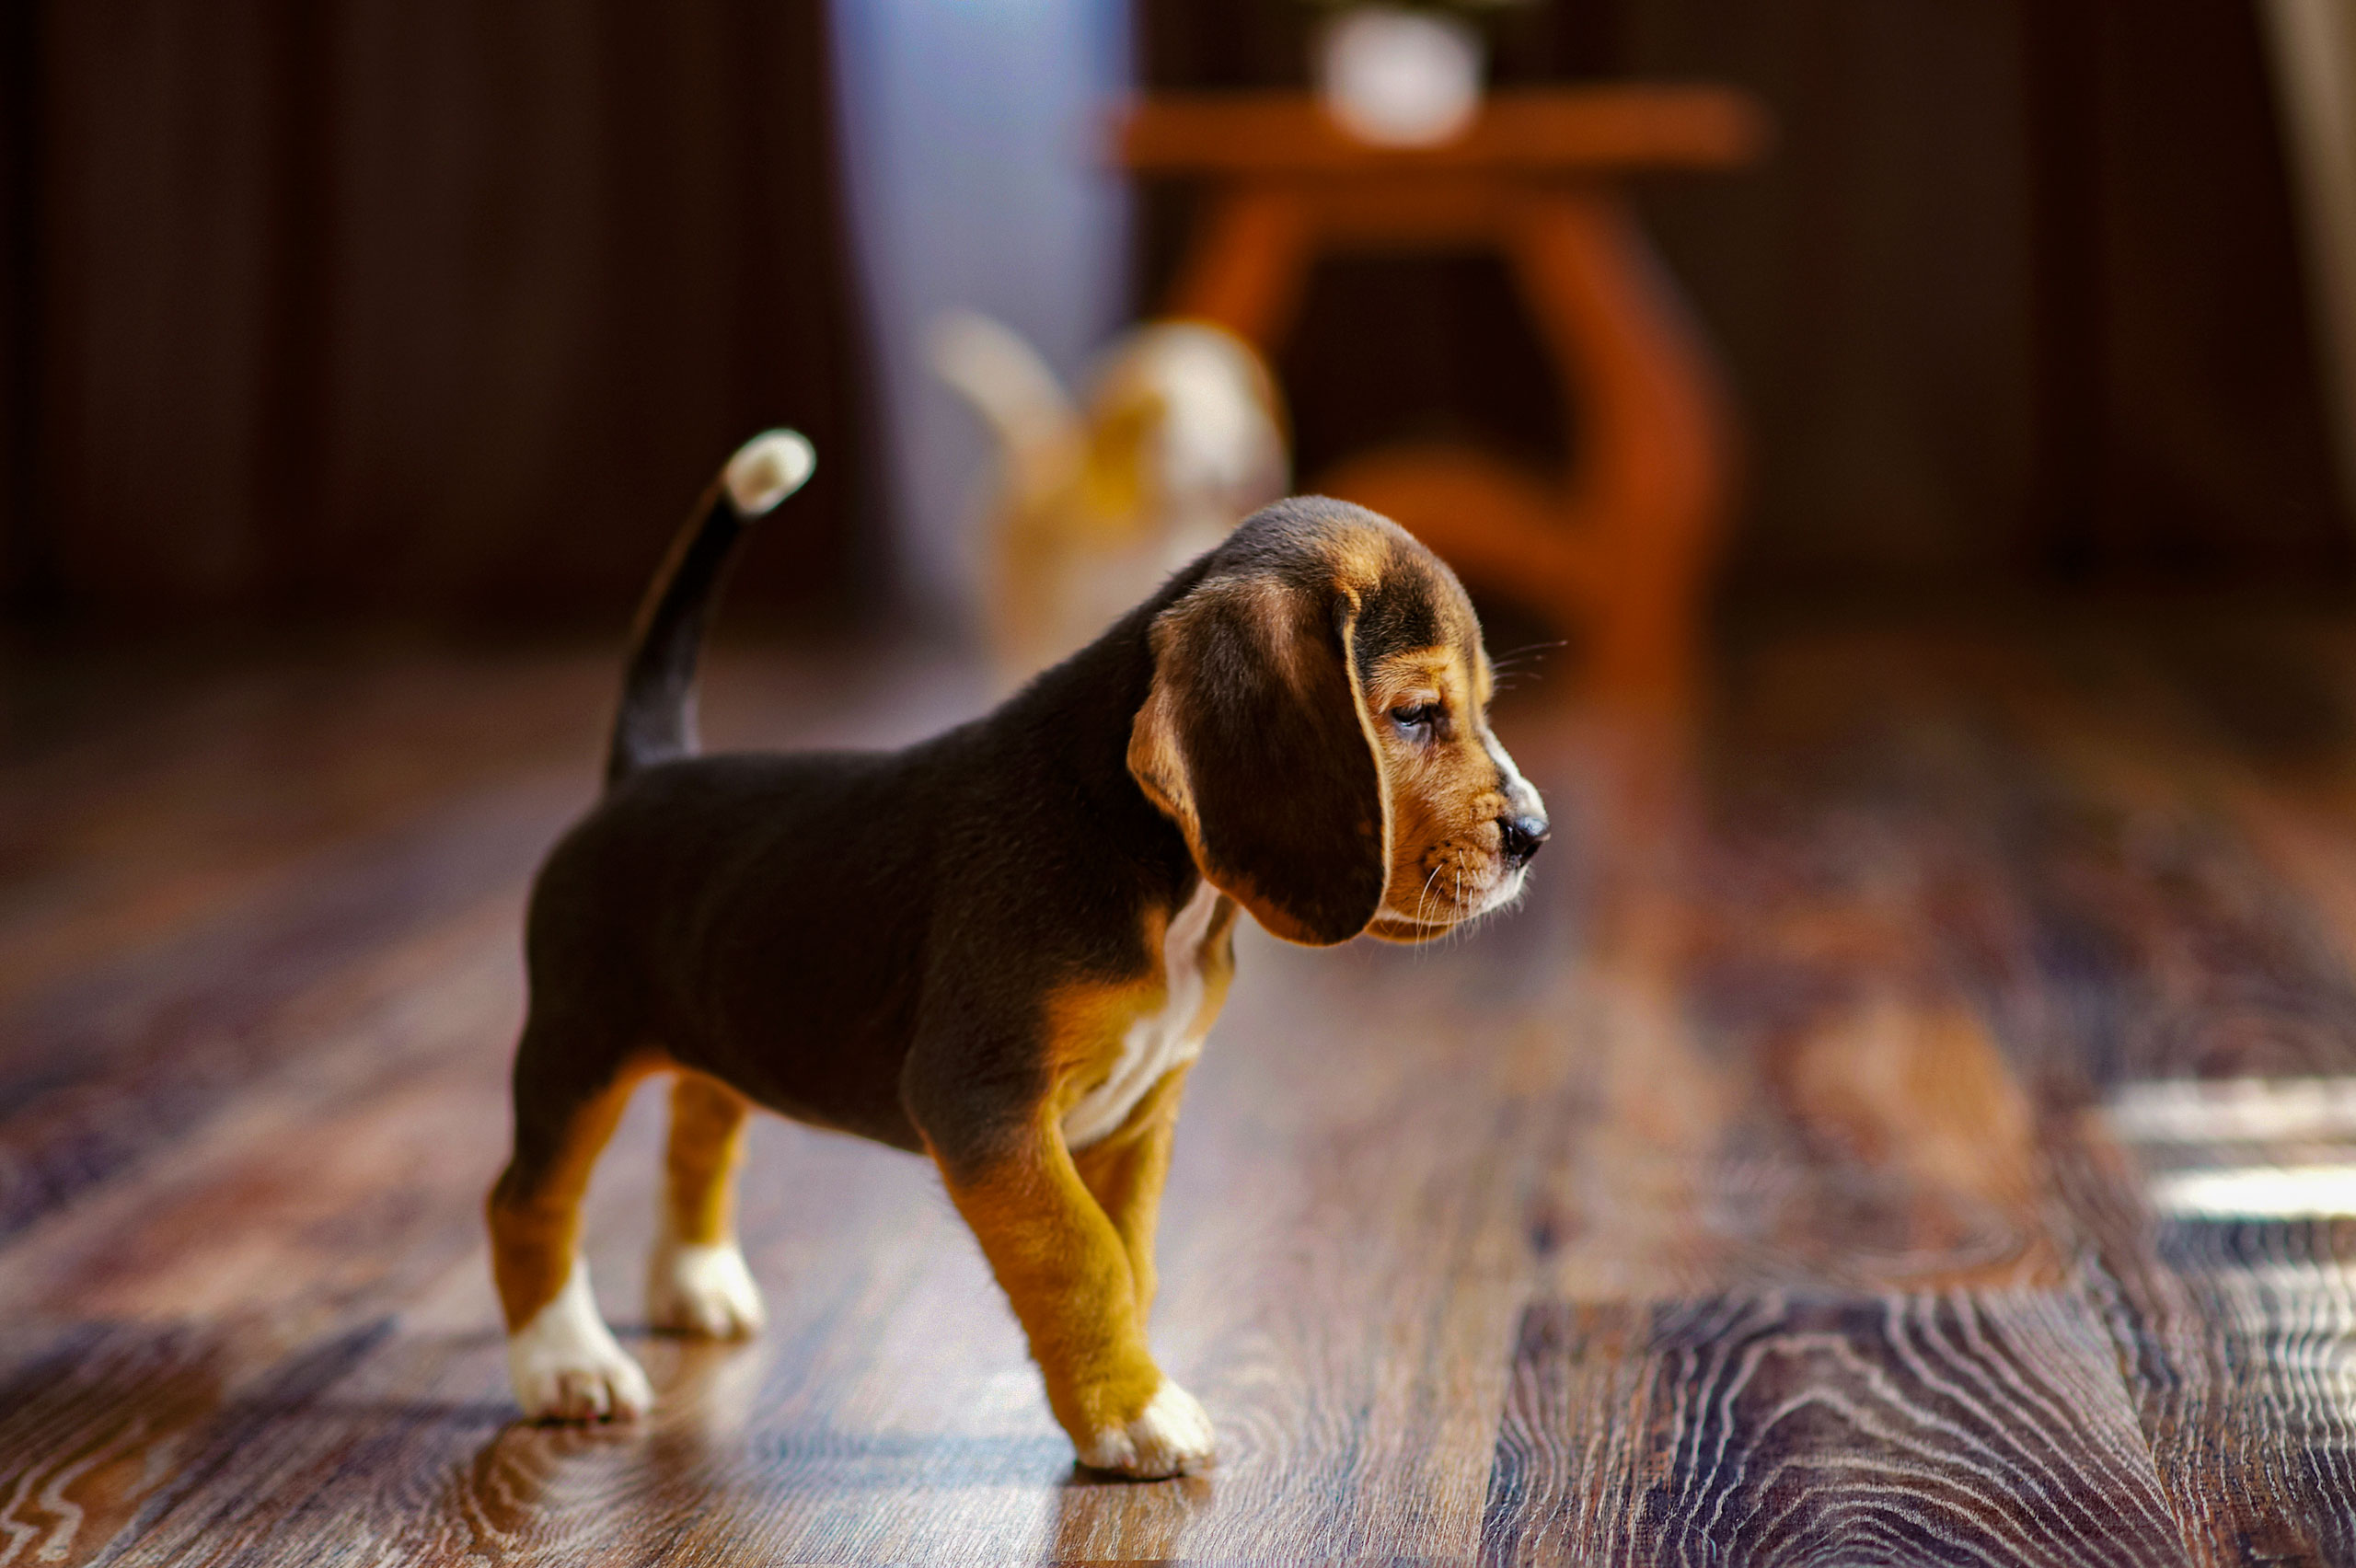 puppy on hardwood floor